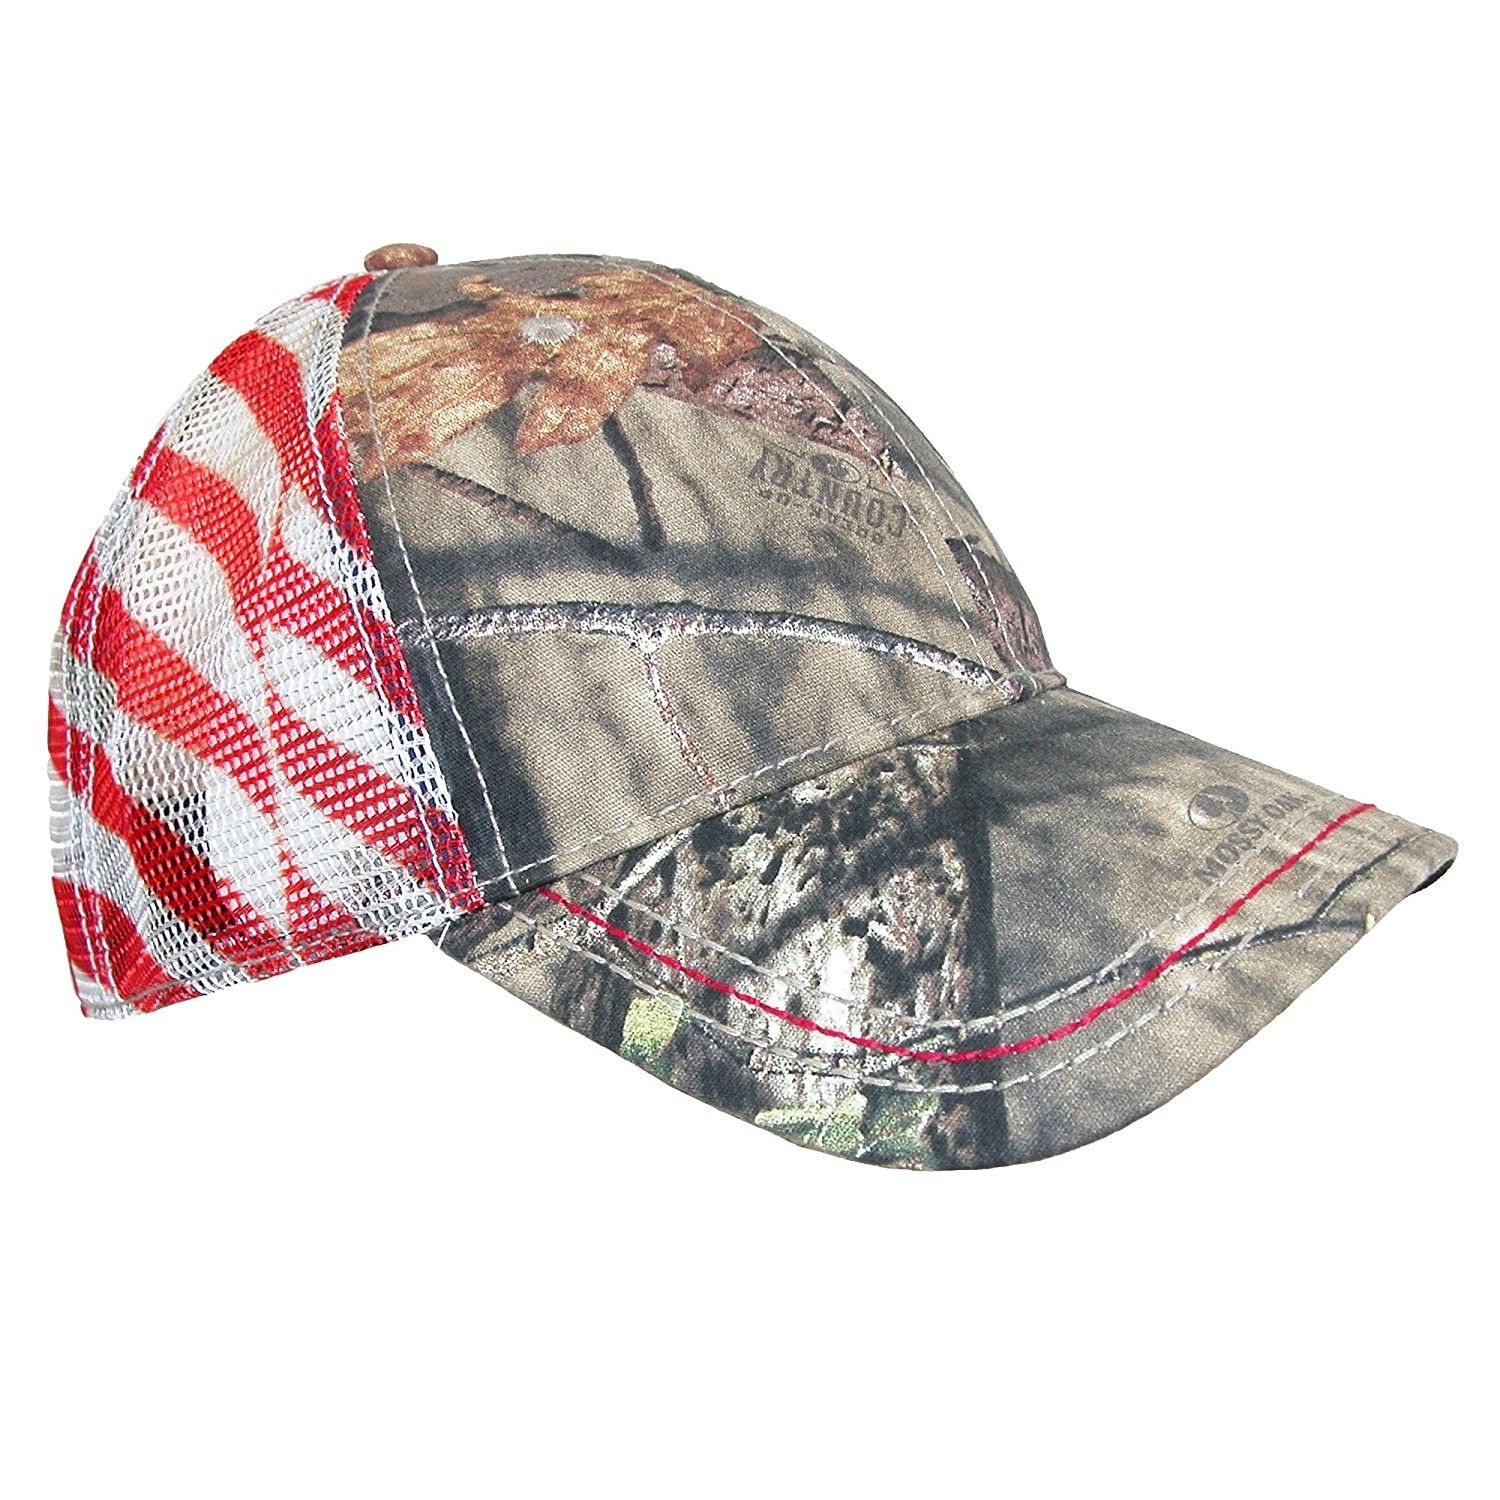 79ca9ca161f8e 3 Oaks Mens Camo Print Wide Brim Fedora. Print is realtree ...